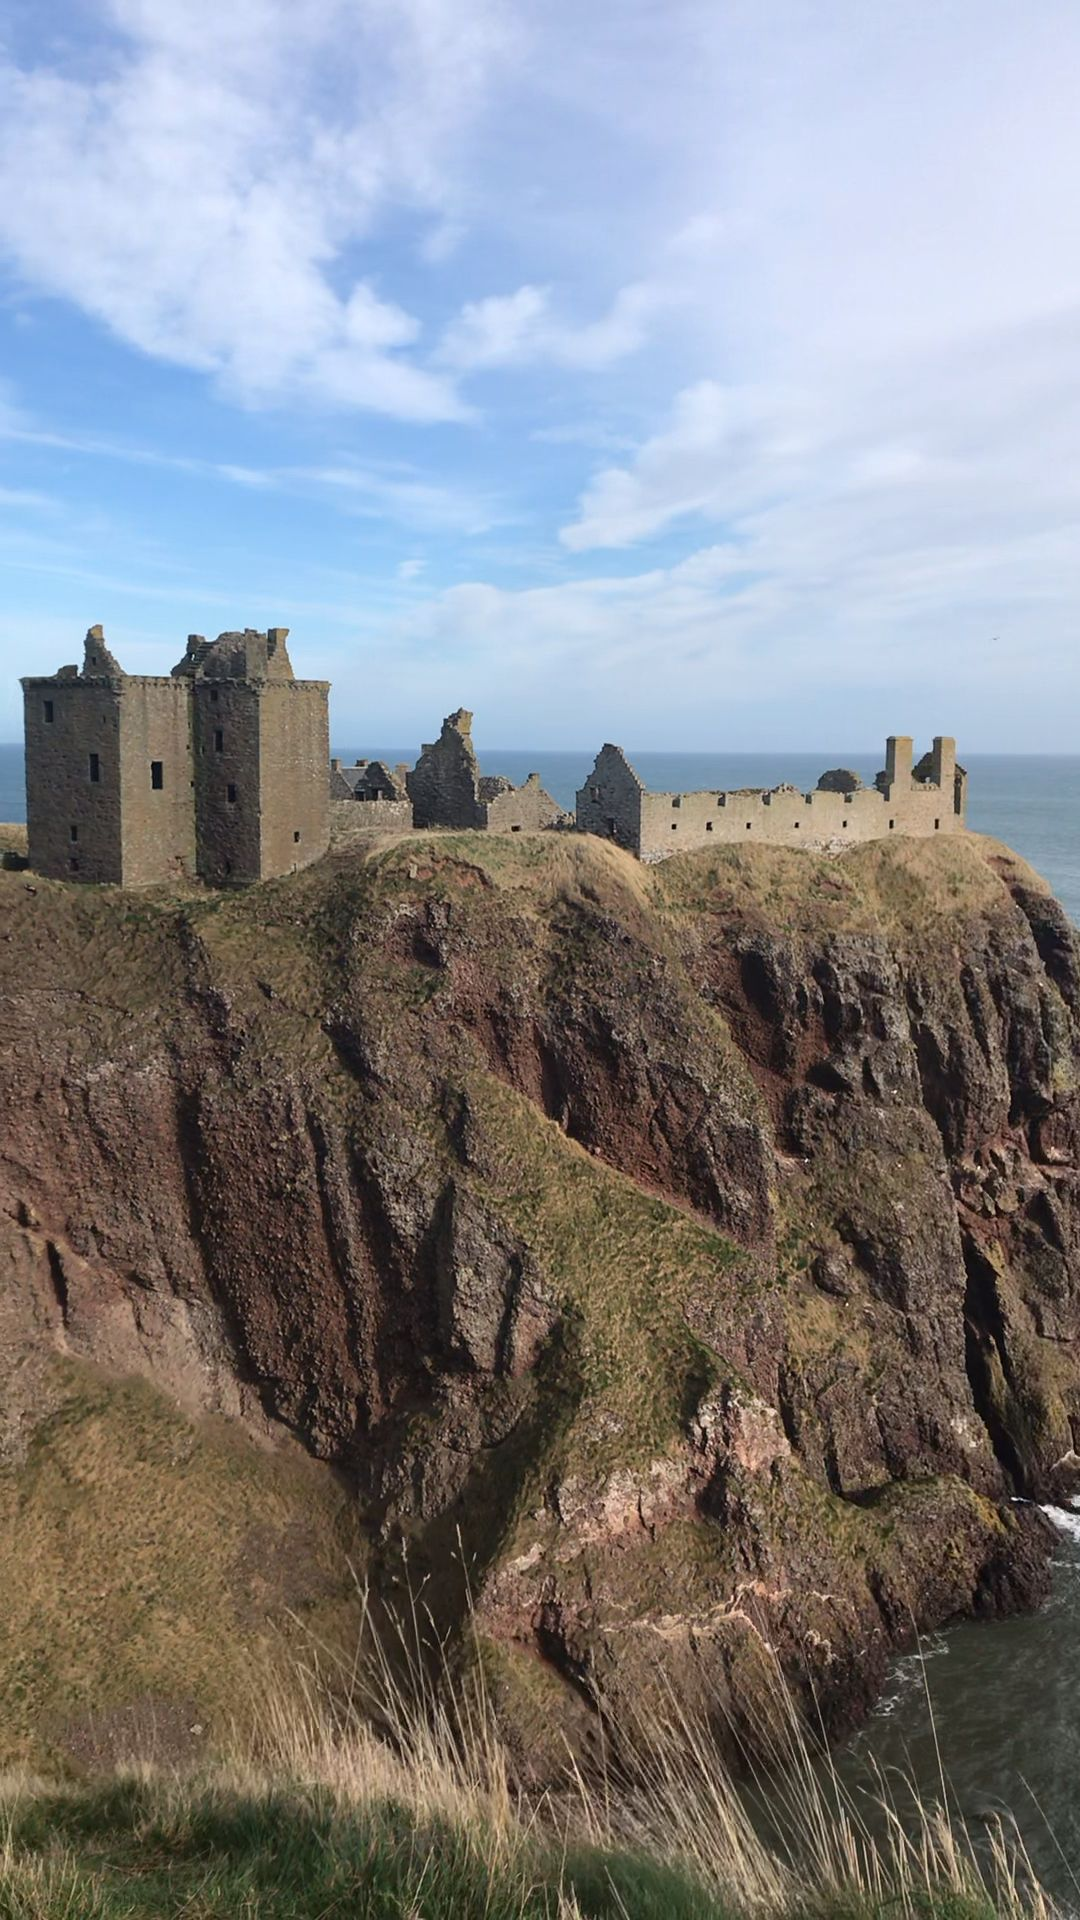 Looking to visit Dunnottar Castle? Find out what else there is to do in the area #scotland #castle #aberdeen